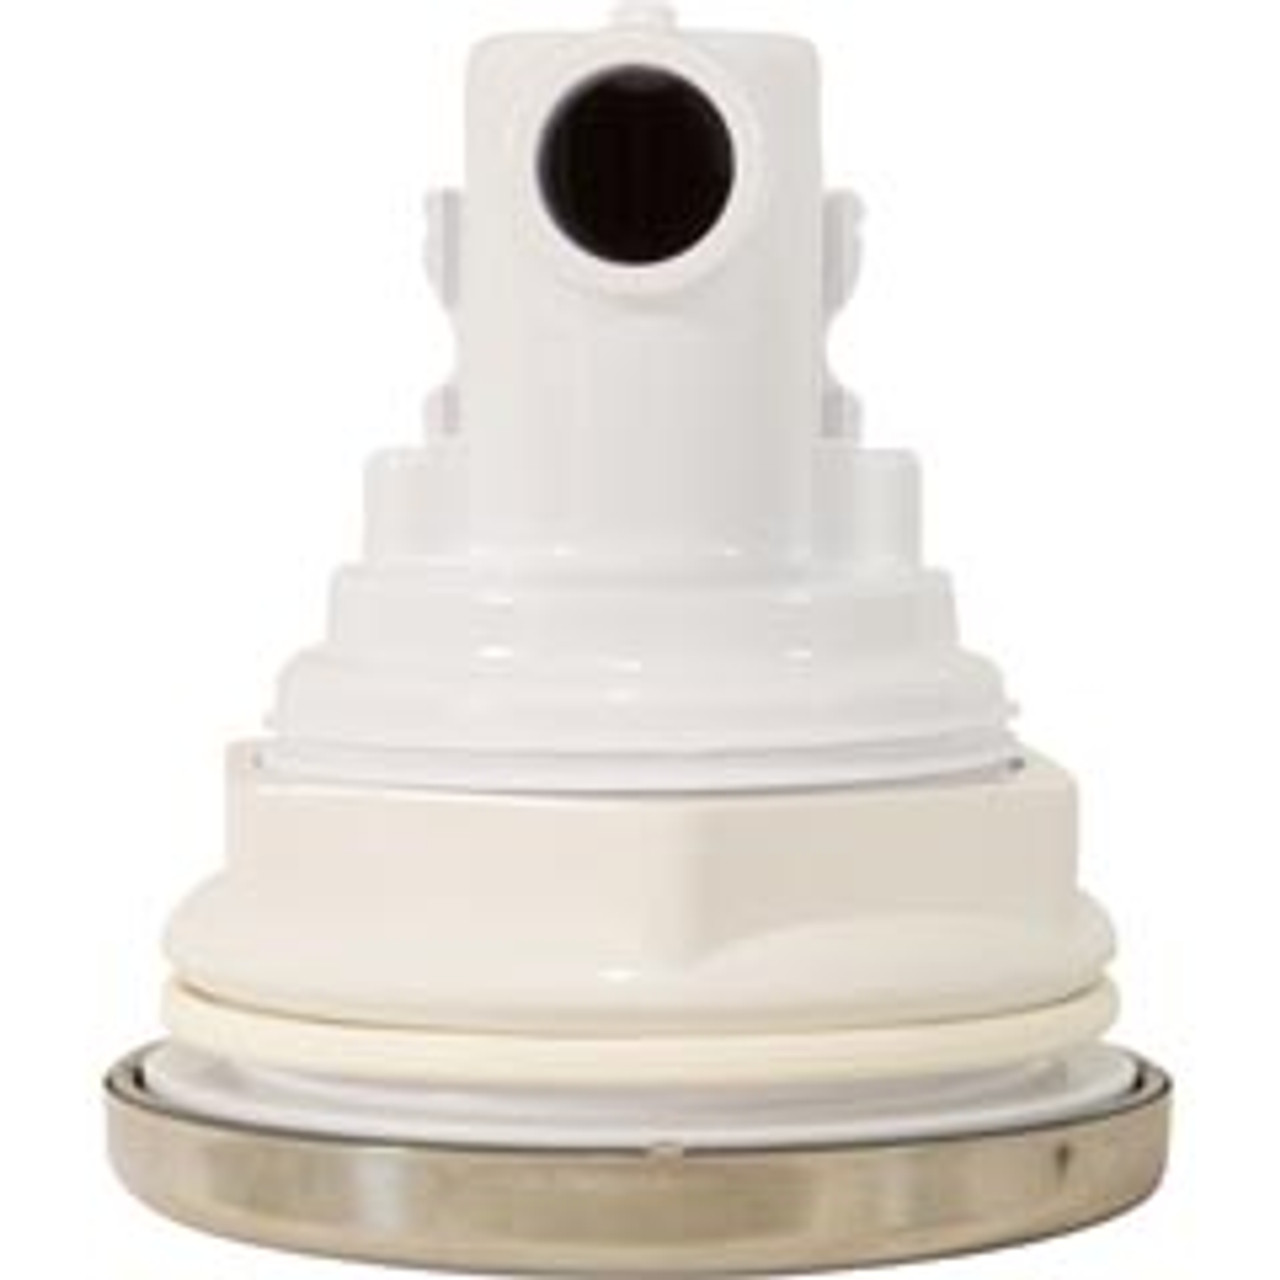 """6541-288, Jacuzzi, PowerPro, 3-9/16"""", Face, Dia, SS, RX3, Rotational, Complete, Jet, FREE SHIPPING, spa, hot tub"""